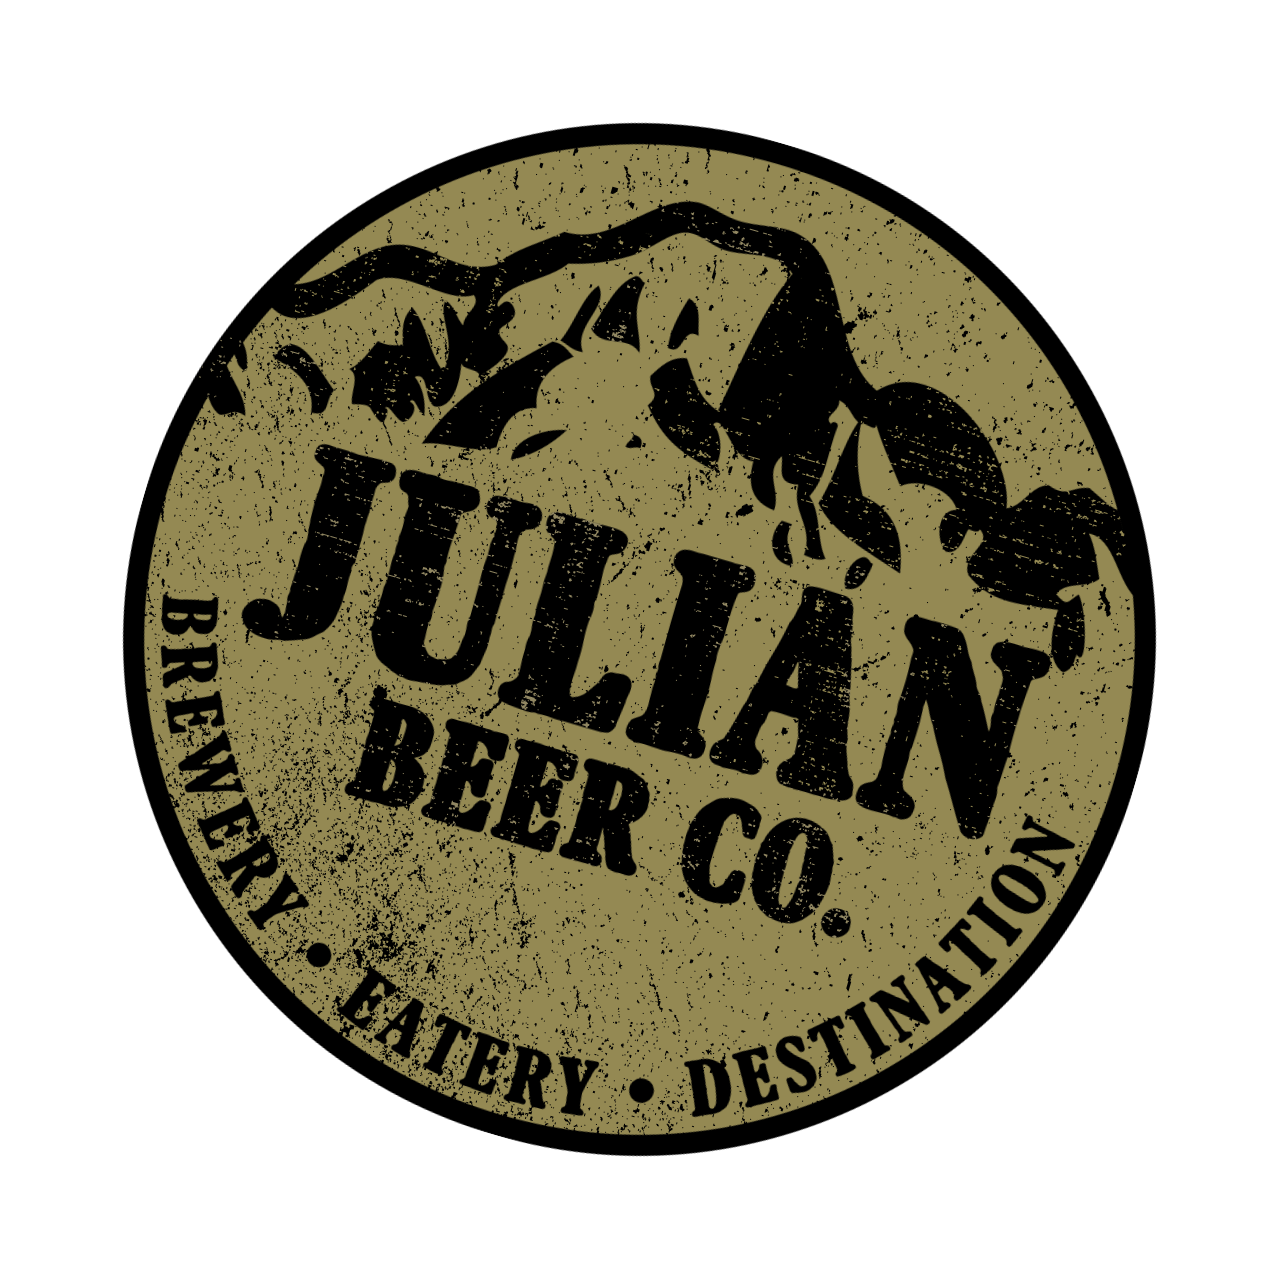 JULIAN BEER COMPANY